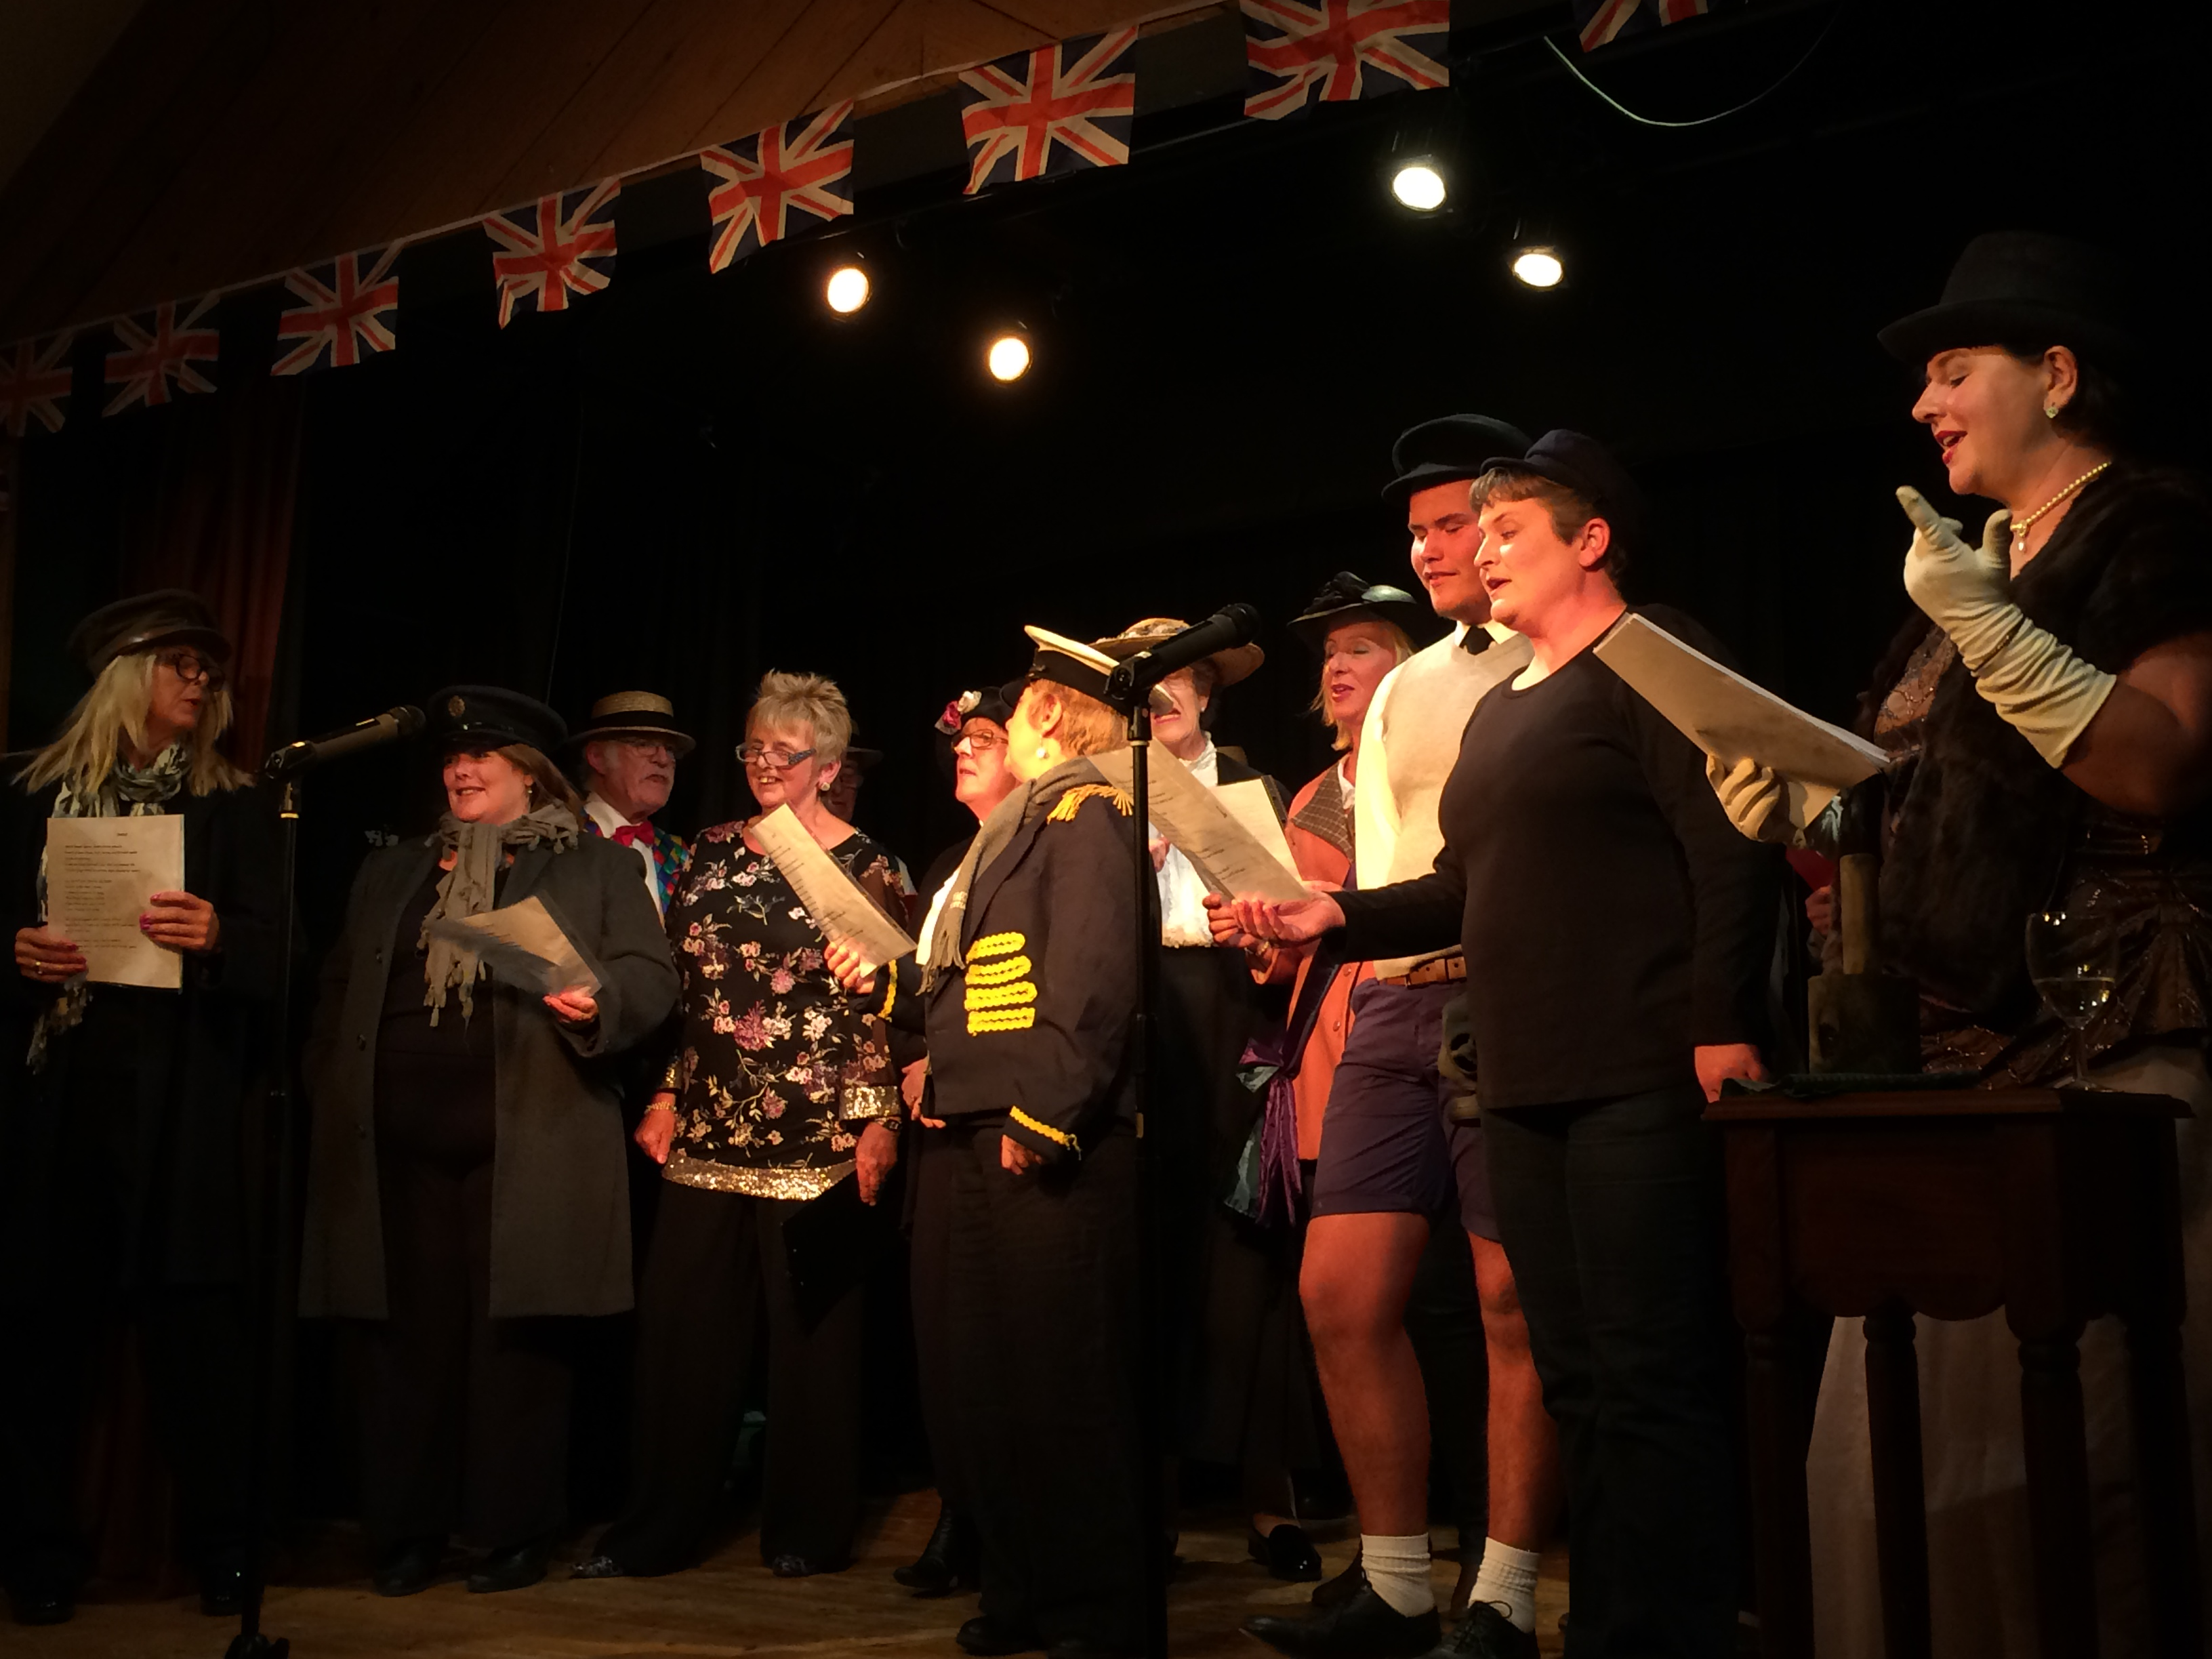 The Alfriston Revue